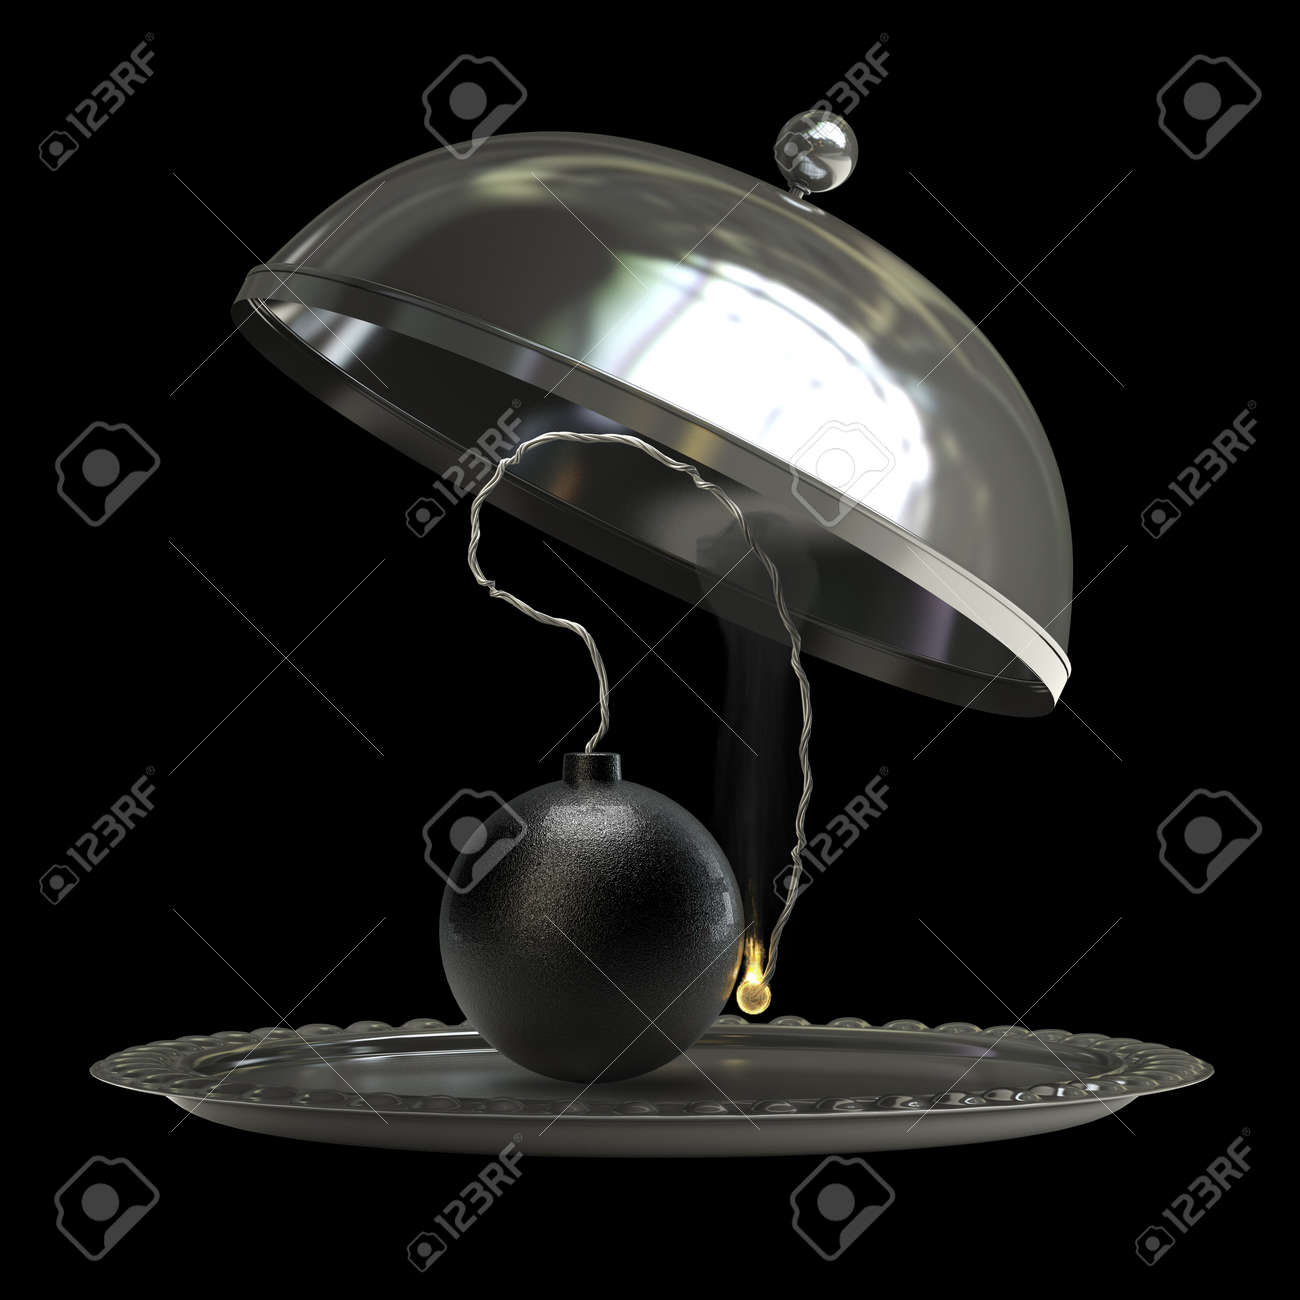 open empty metal silver platter or cloche with Cannonball bomb isolated on black background 3d render Stock Photo - 18772909